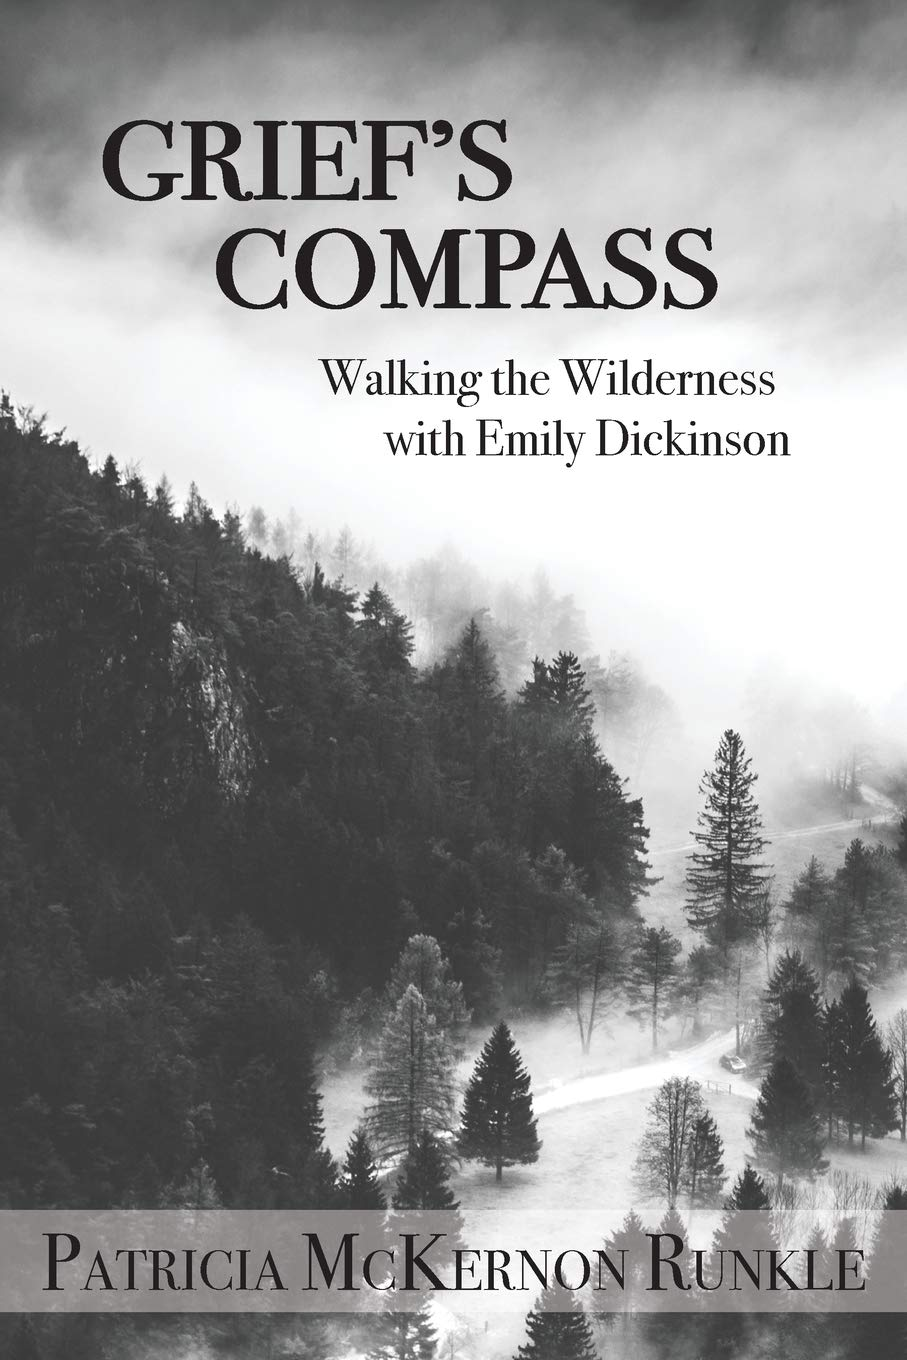 Grief's Compass - Walking the Wilderness with Emily Dickinson